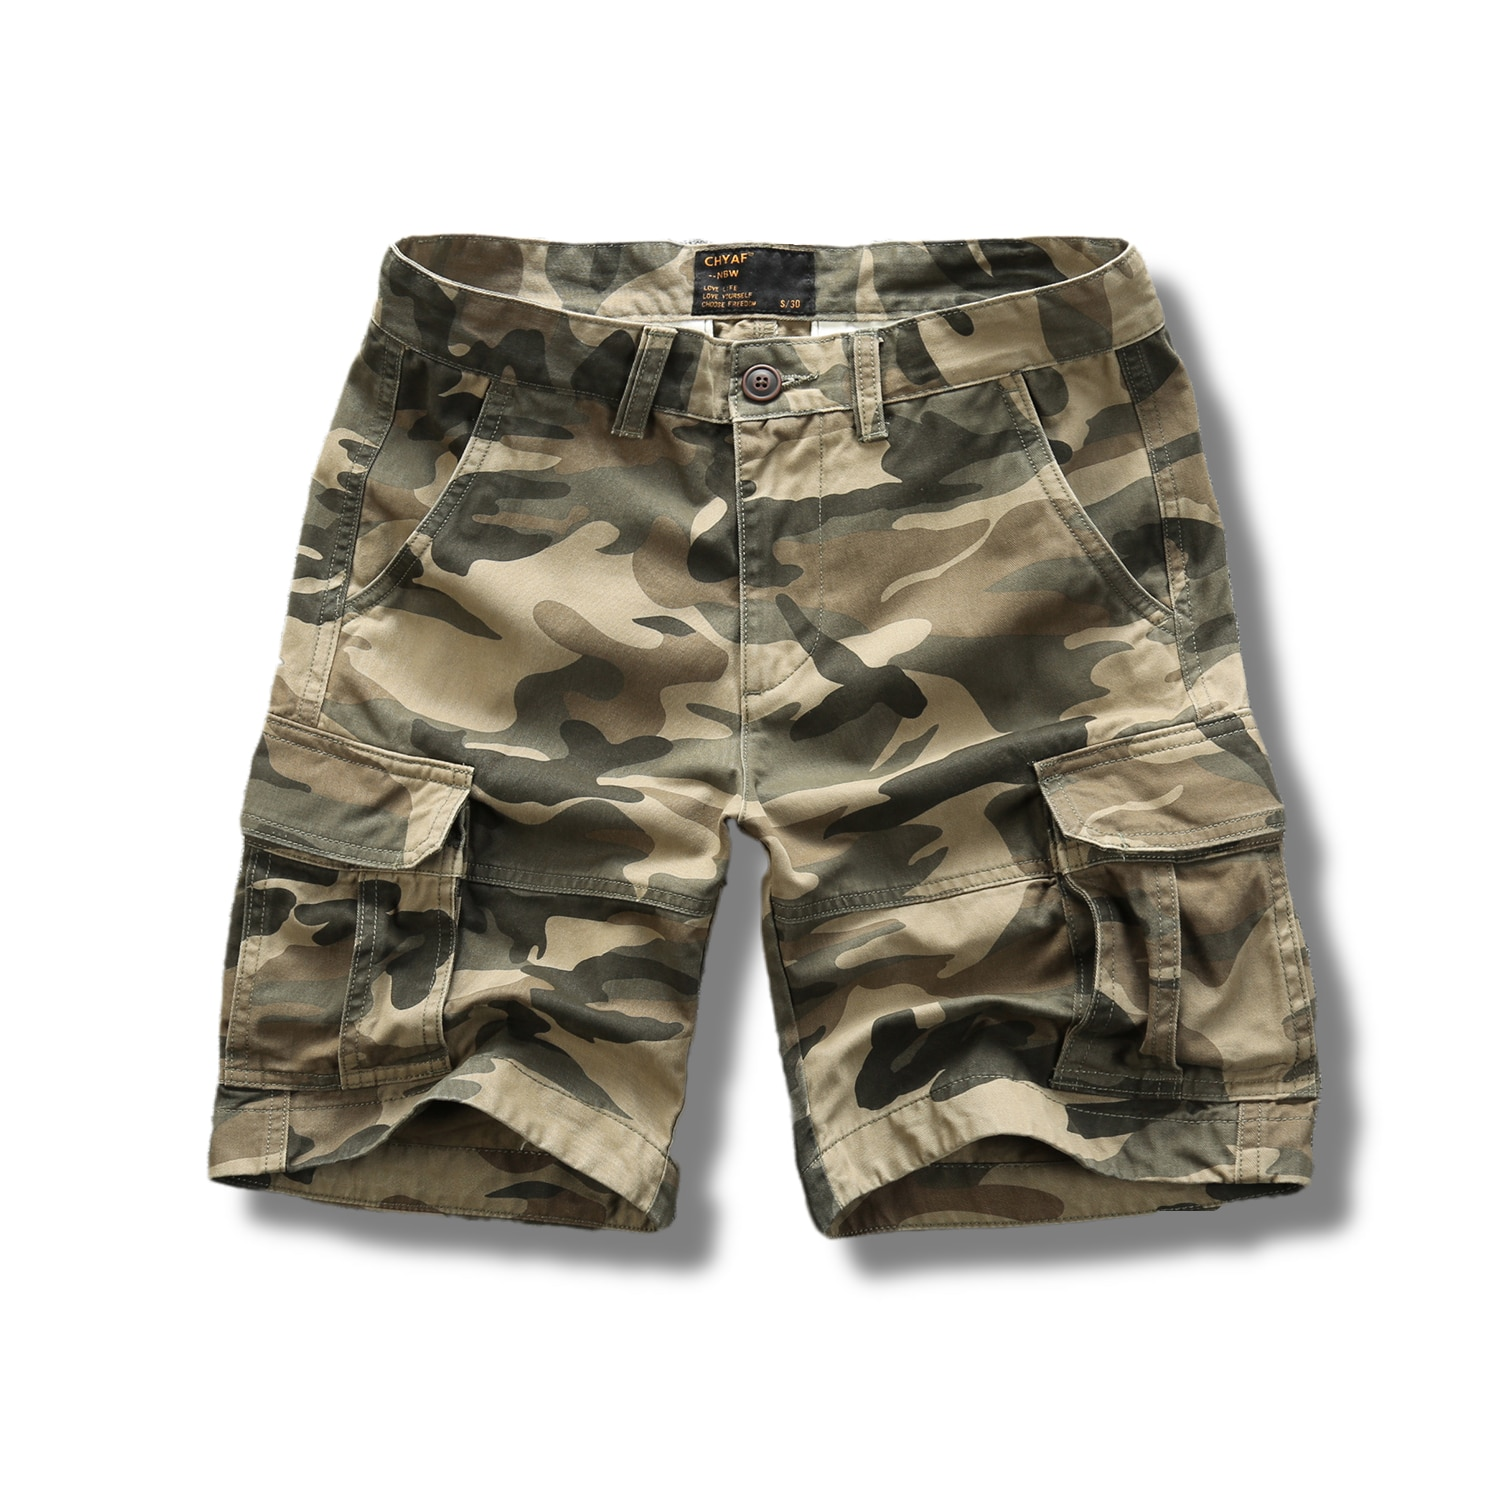 Sports Shorts Cotton 100% Men Camouflage Pants S-XXL Mens Summer Casual Custom Wholesale Tooling Cargo for